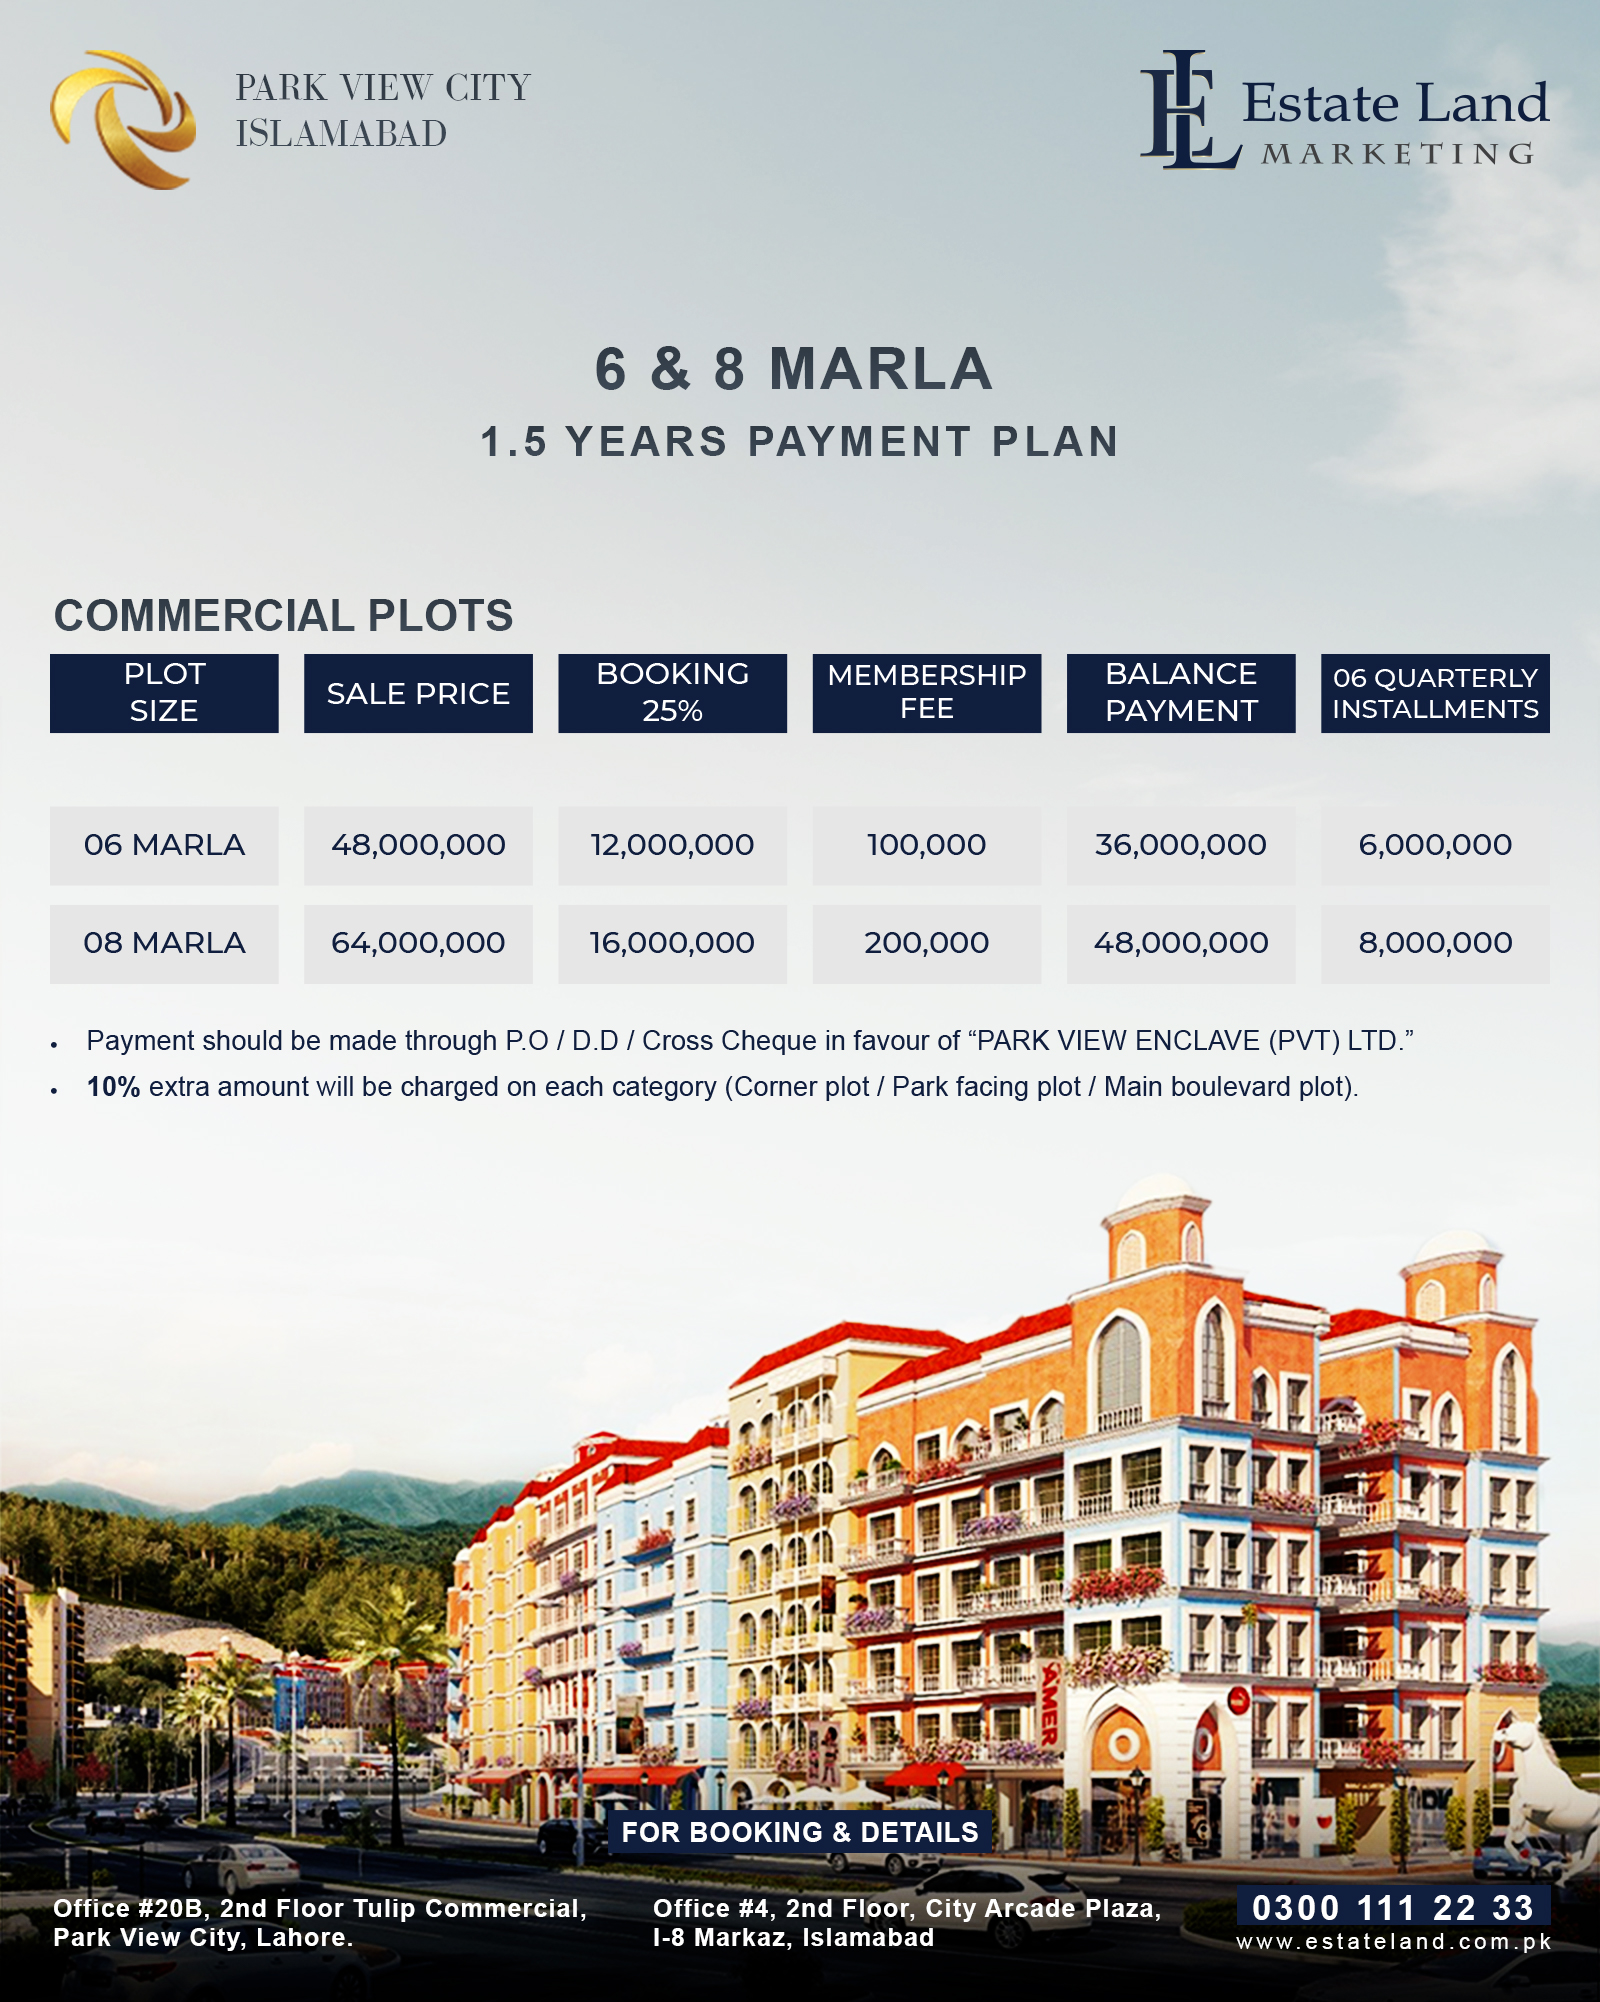 Downtown Commercial Payment Plan of Park view city